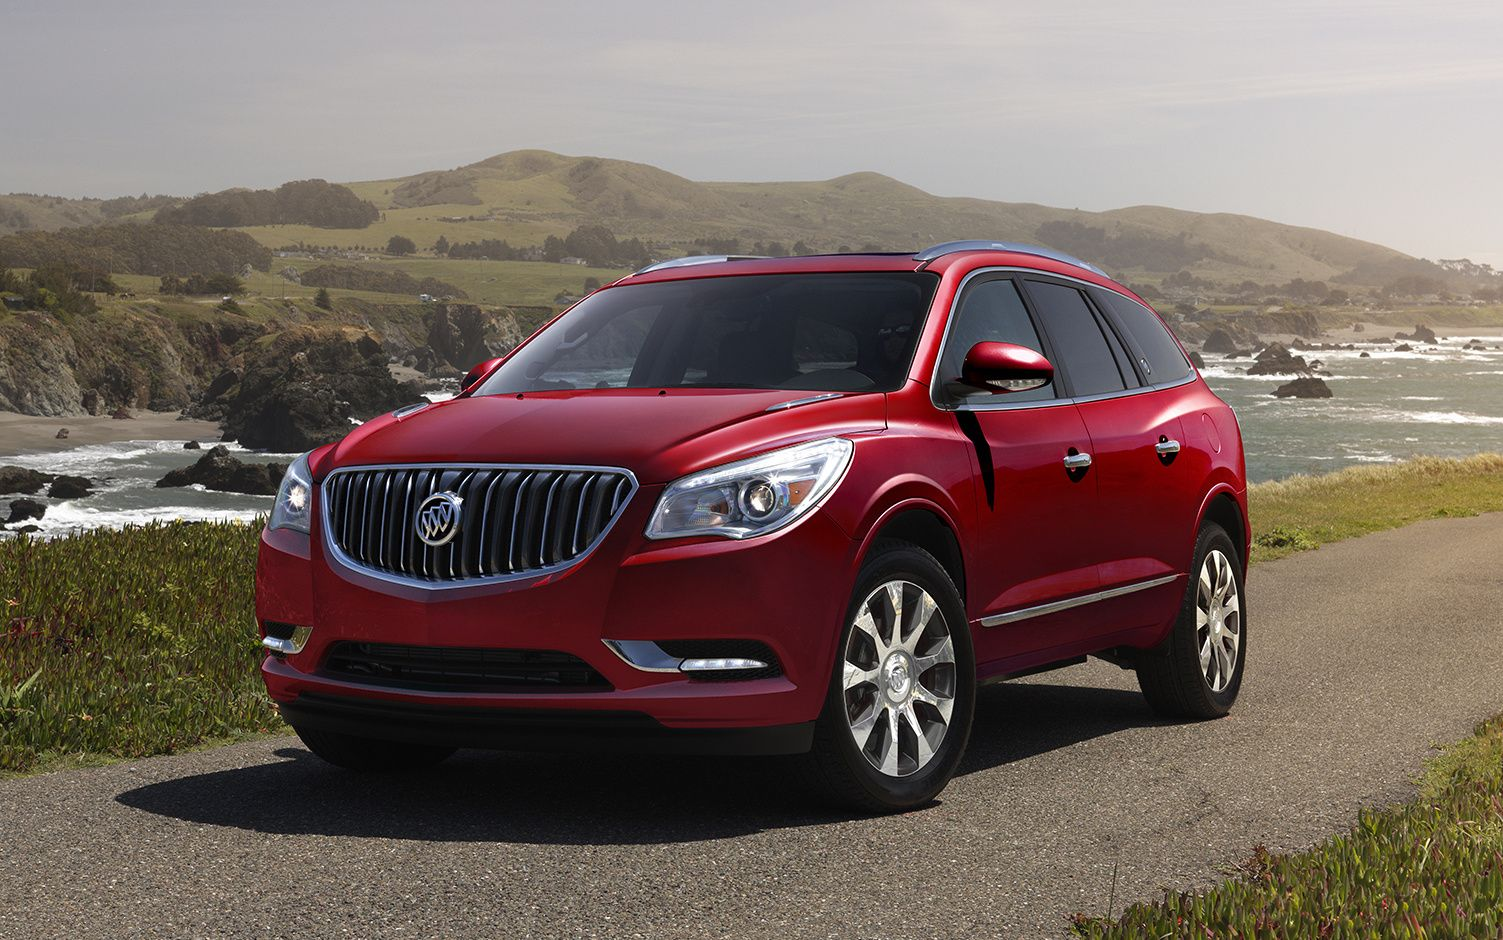 2016 2017 Buick Enclave For Sale In Your Area Cargurus Buick